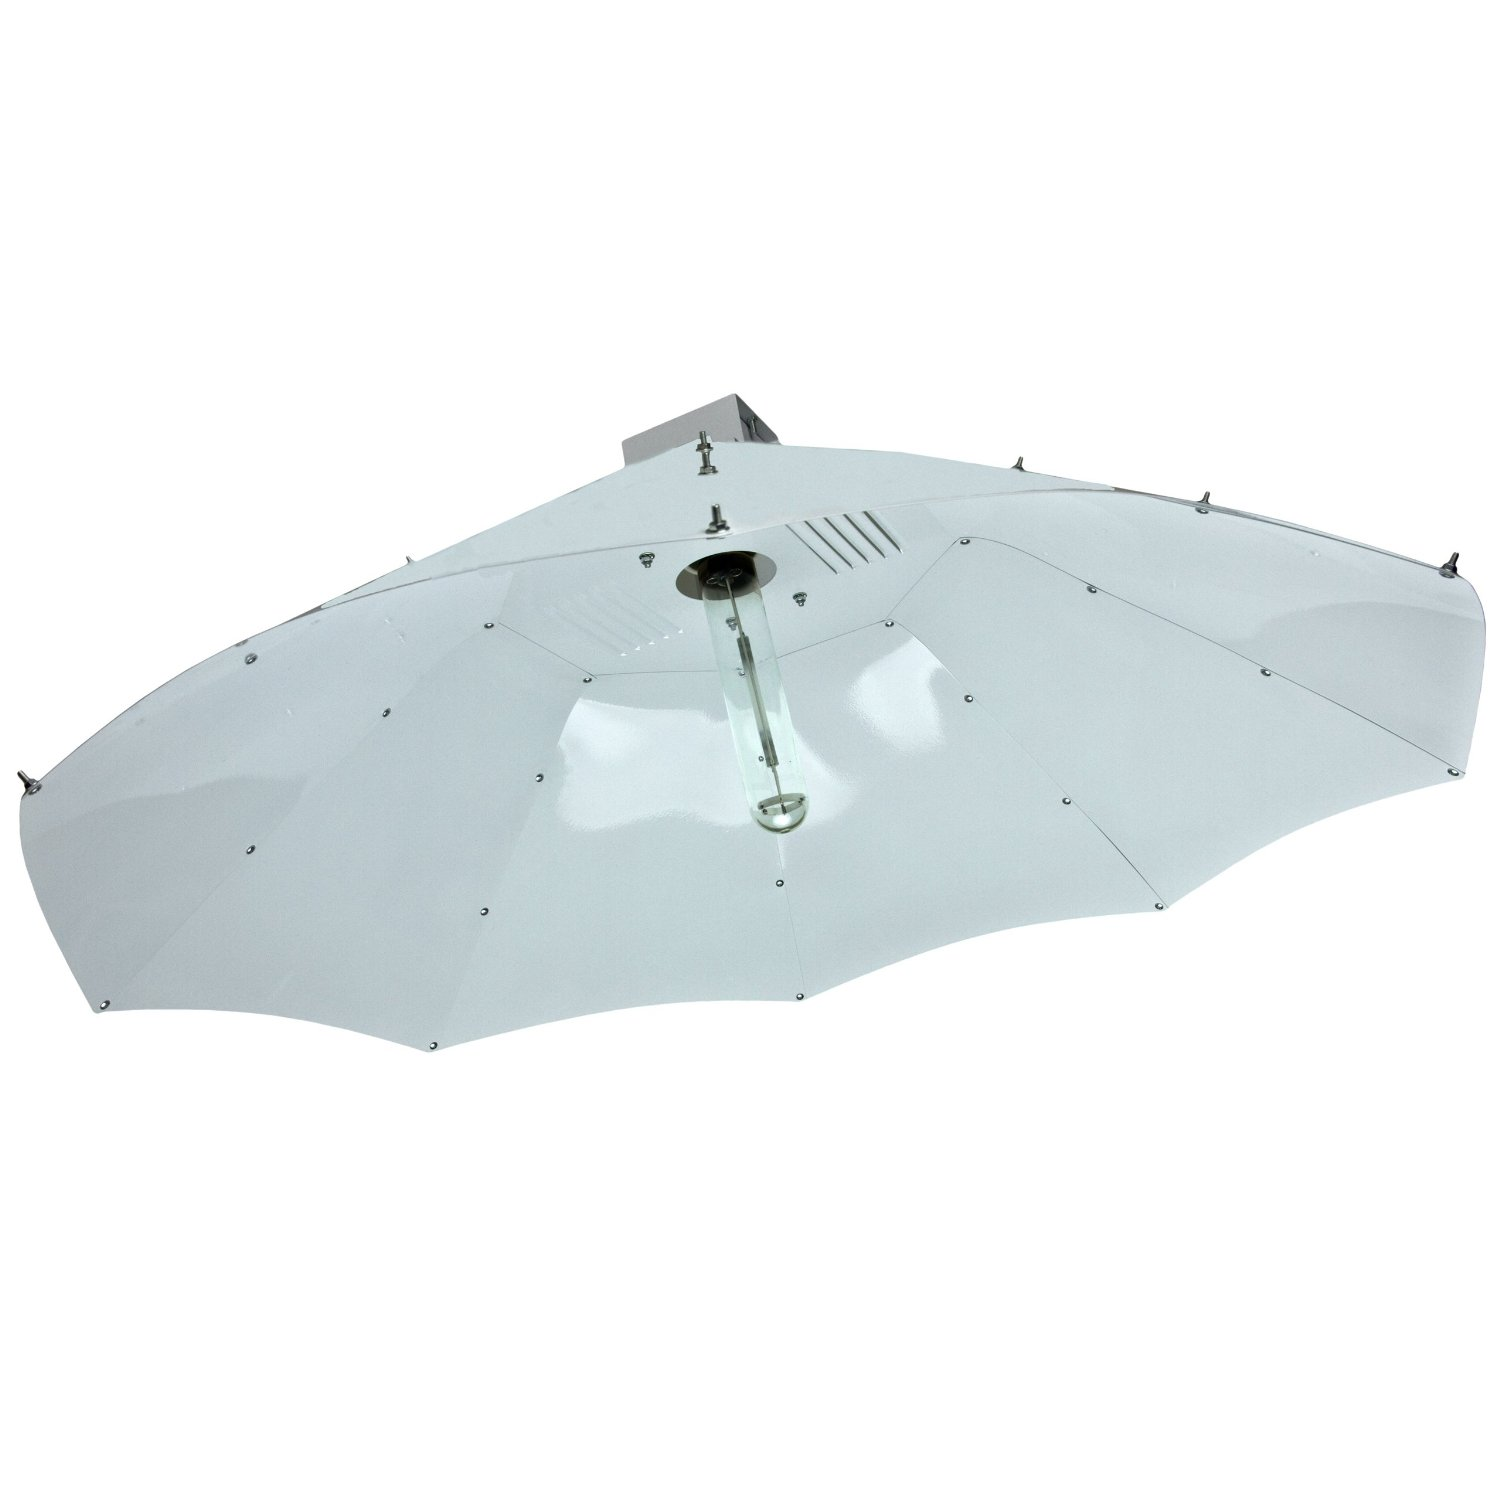 Maxibright Parabolic Reflector (small) 80cm Dia